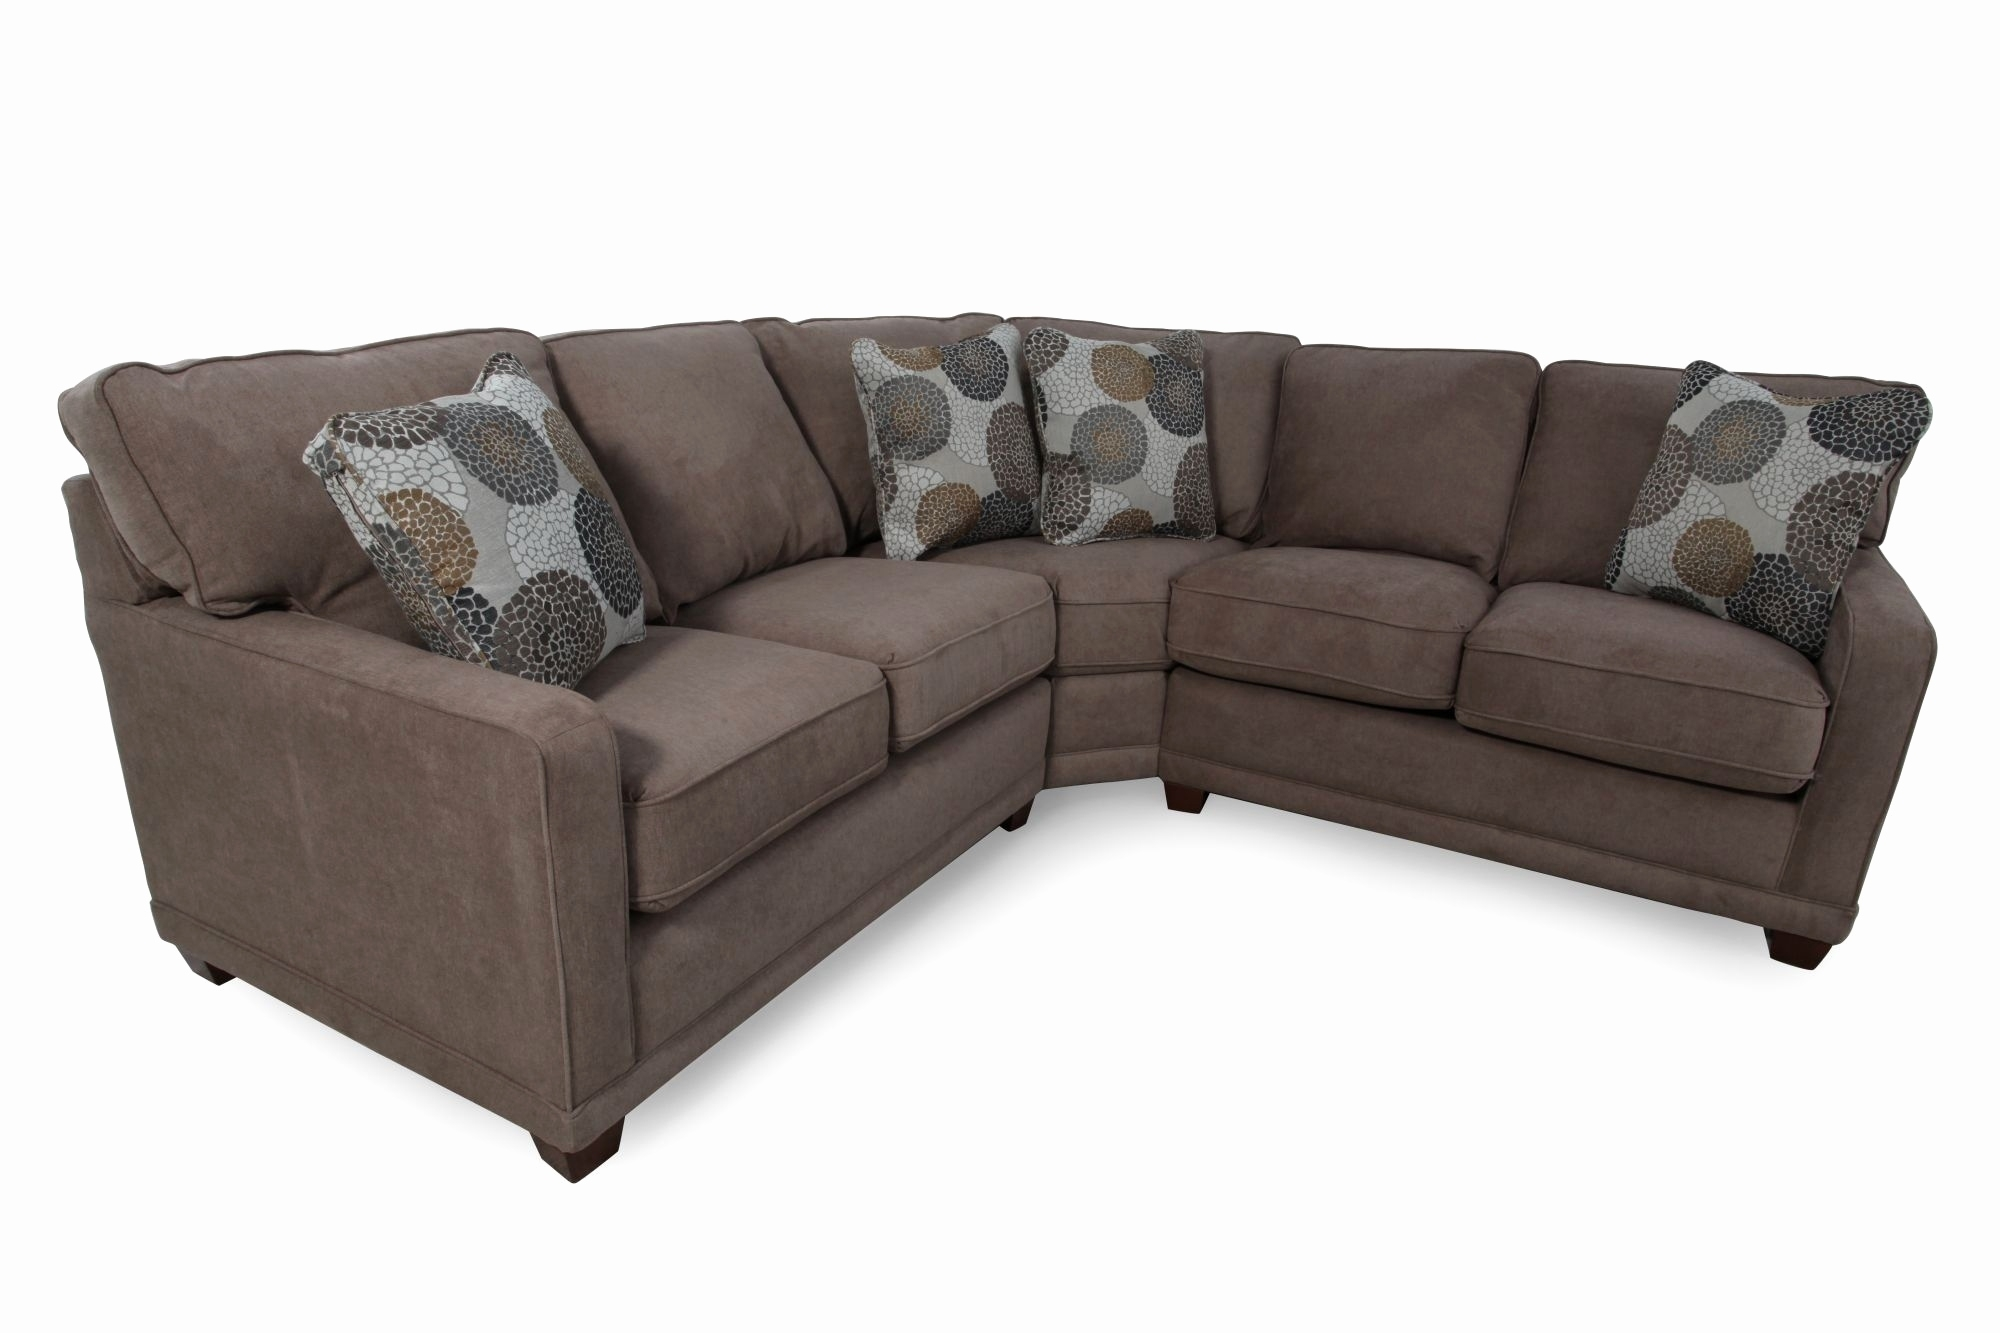 Beautiful Lazy Boy Leather Sectional Sofas 2018 – Couches Ideas Within Sectional Sofas At Lazy Boy (View 3 of 15)